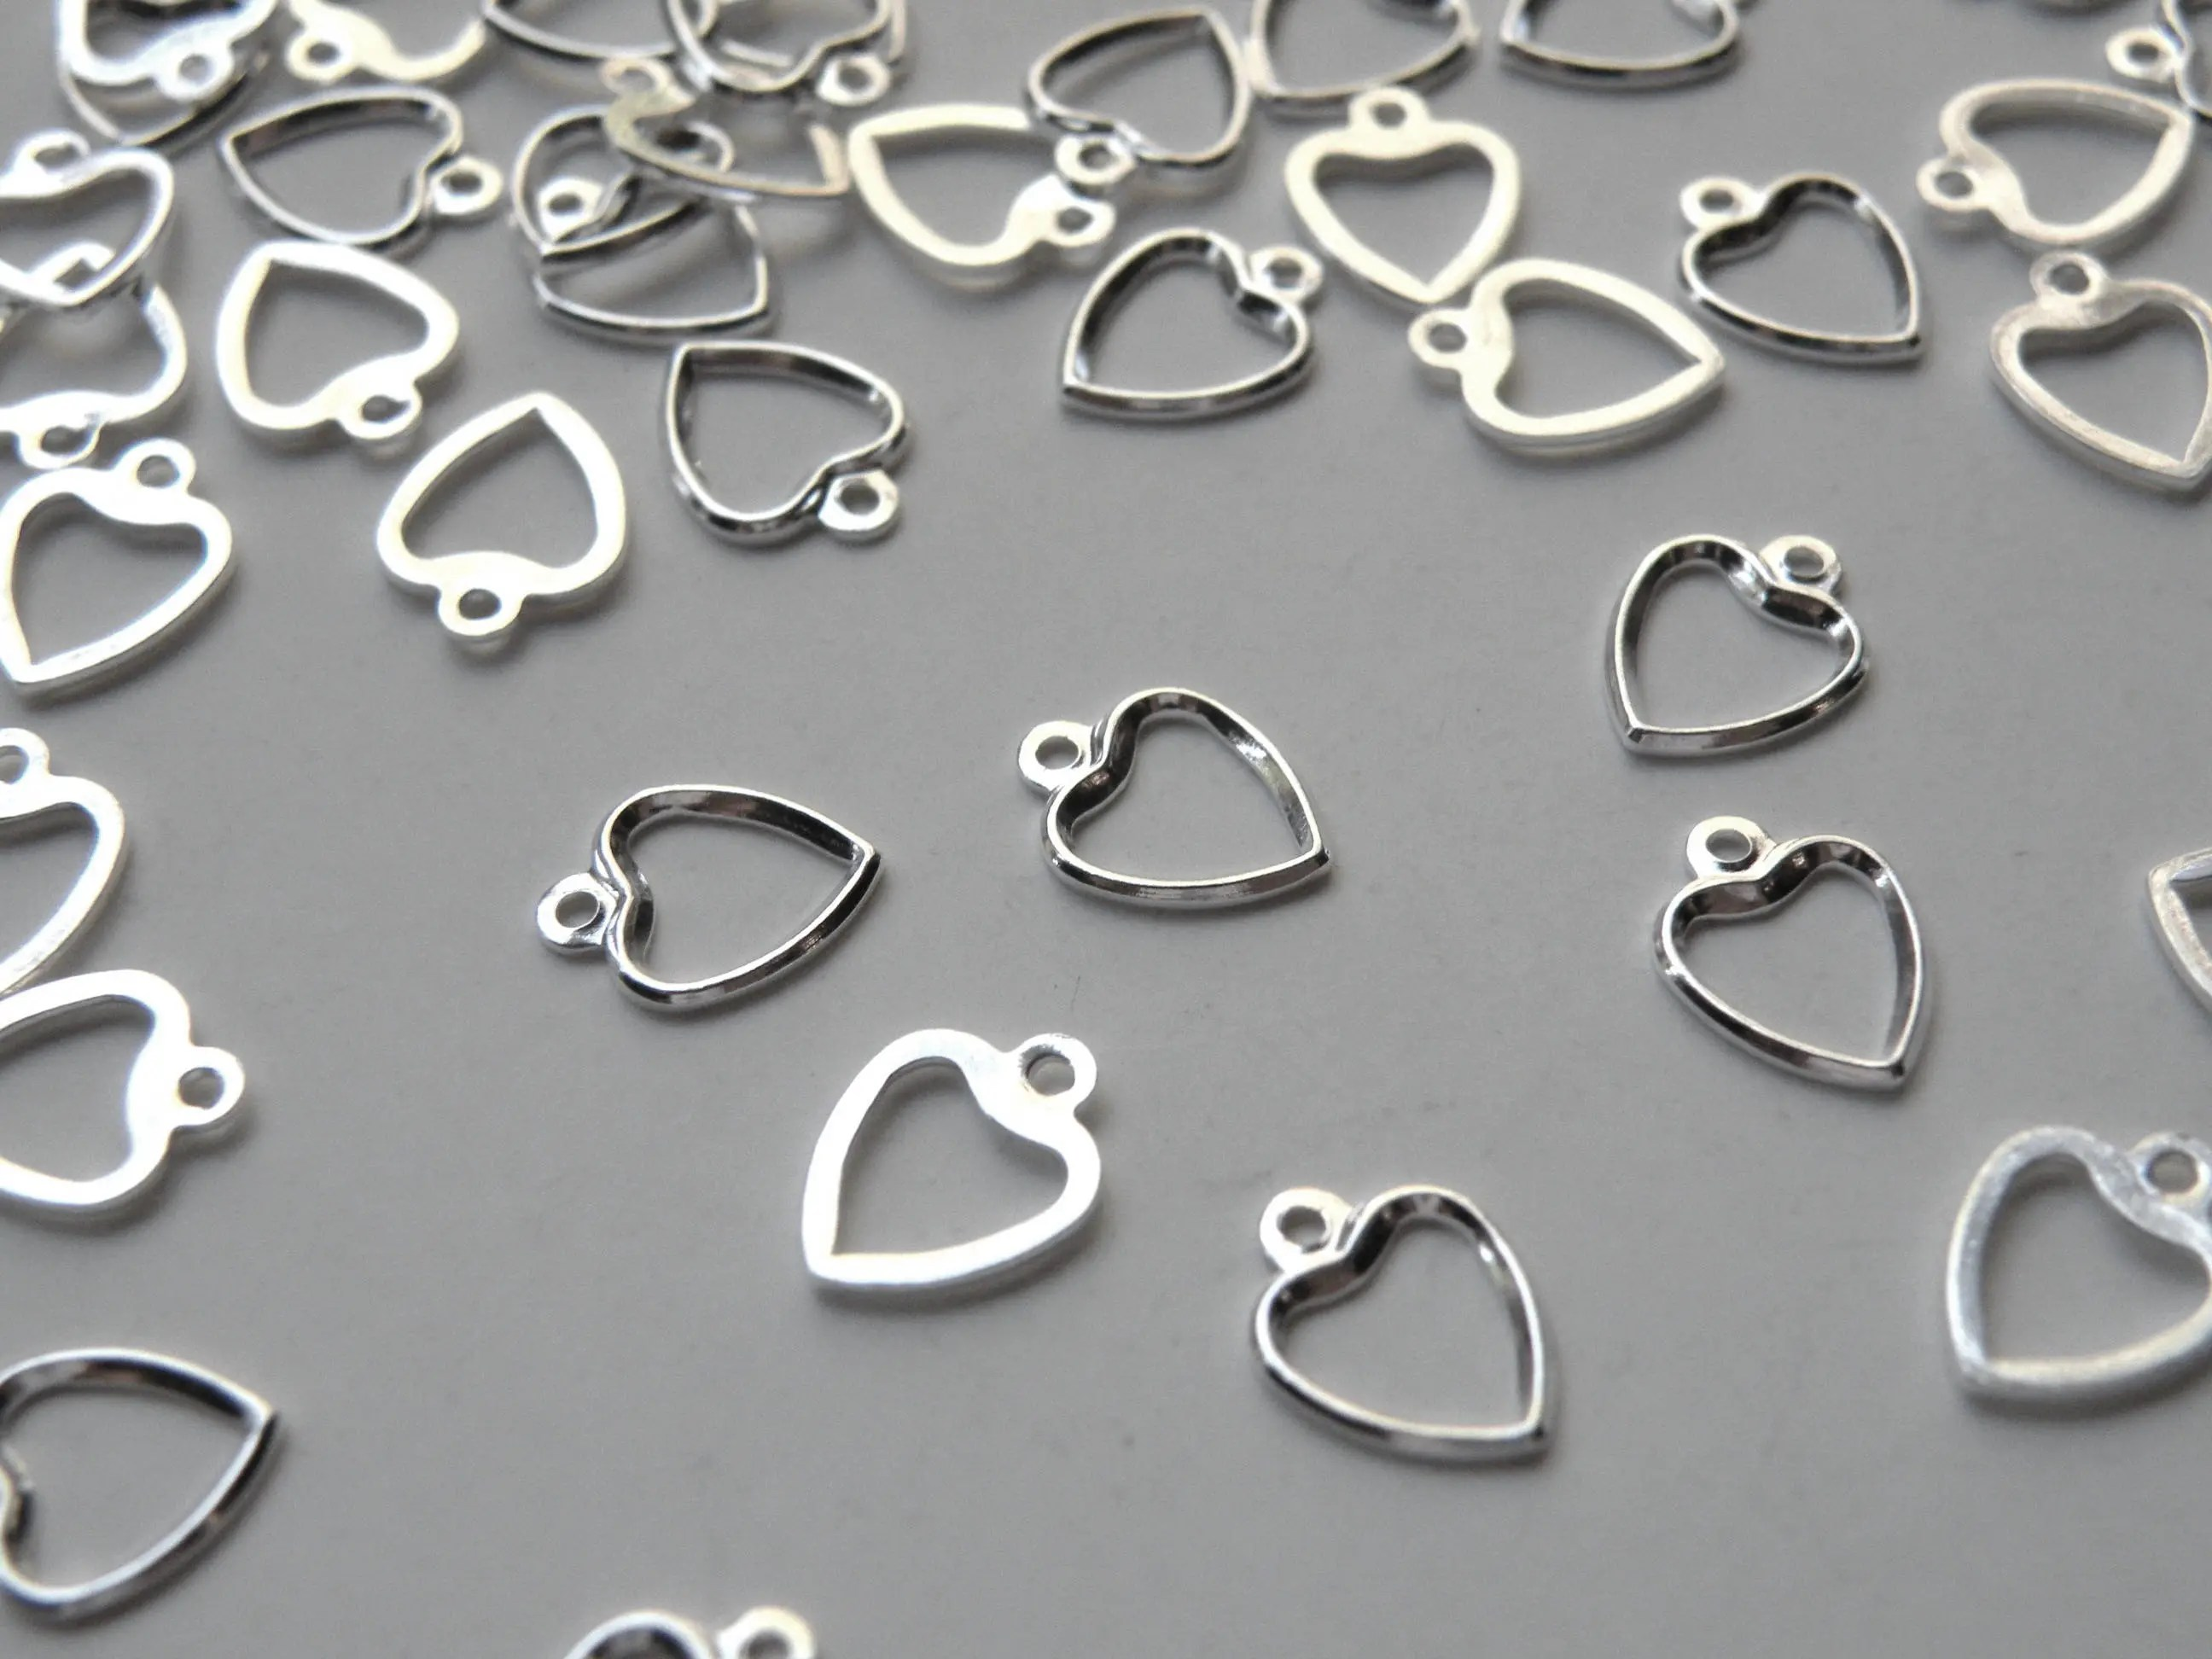 20 Simple Little Open Heart Charms Shiny Silver Plated